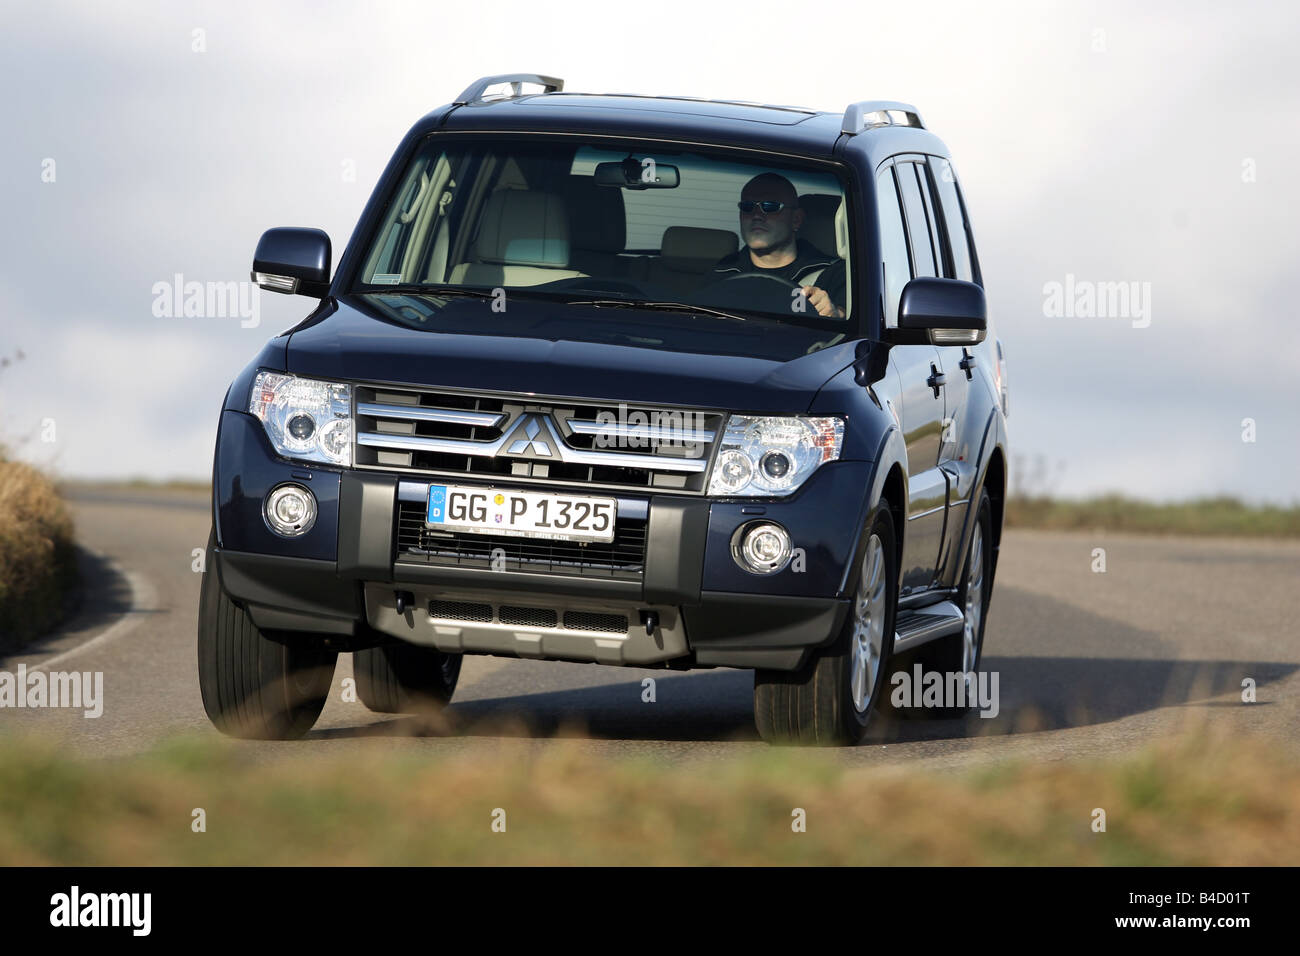 Mitsubishi Pajero 3,2 Instyle-Version, model year 2007-, dunkelblue moving, diagonal from the front, frontal view, - Stock Image